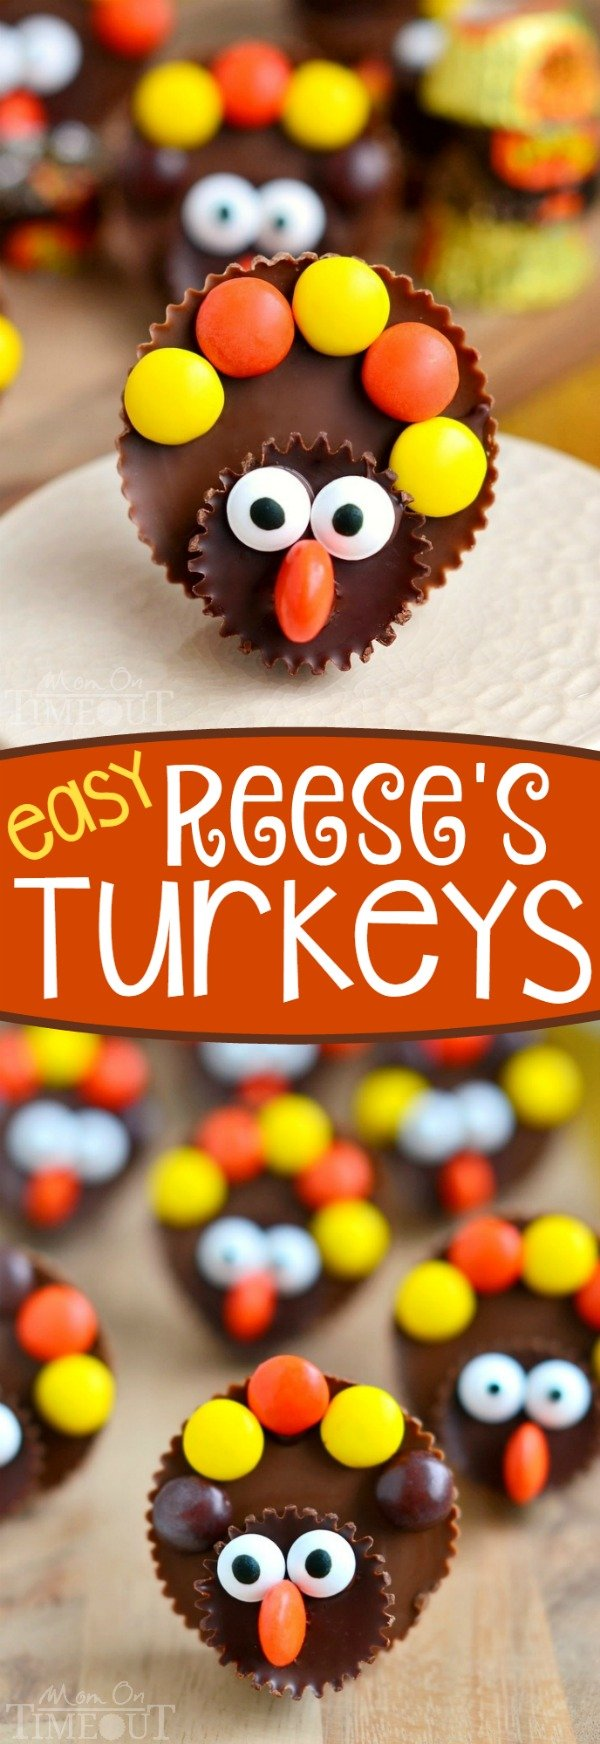 Calling all Reese's lovers! Look no further for the perfect Thanksgiving treat with these completely adorable Reese's Turkeys! Super easy to make and sure to please the chocolate and peanut butter lovers in your life!